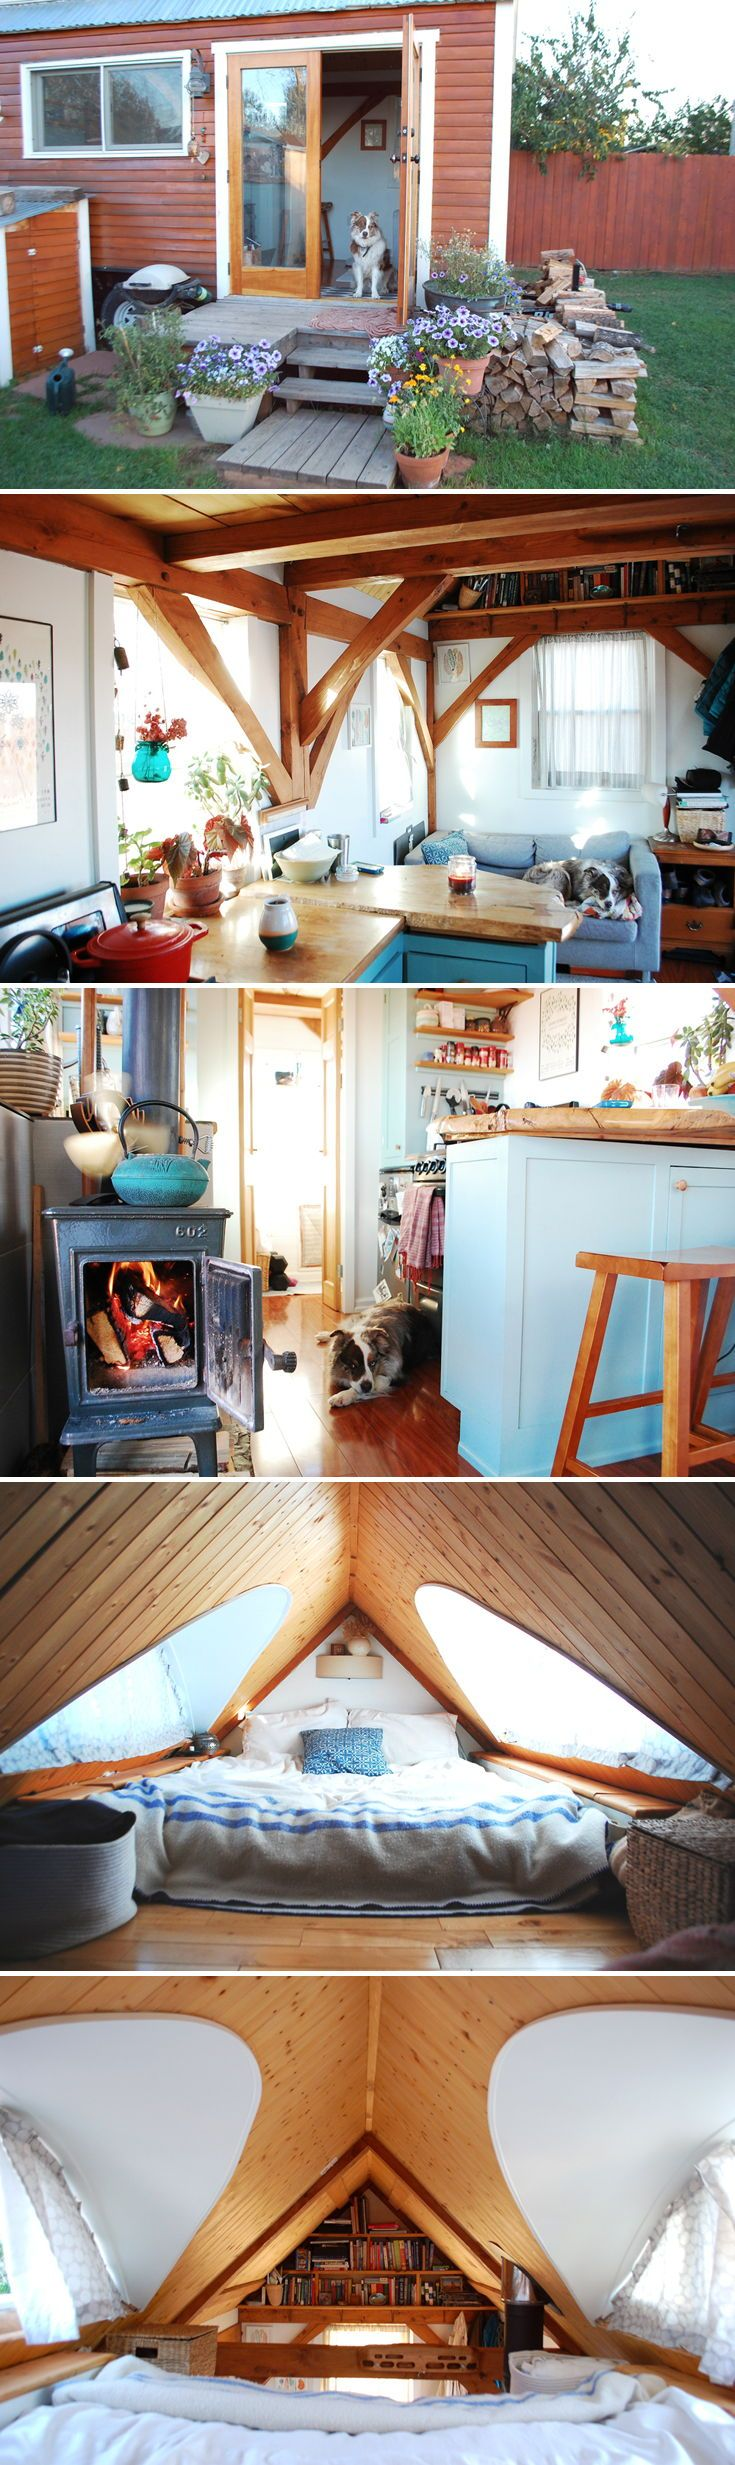 The Tiny Timber House is an 18-foot tiny home built on wheels. It was self-built by Paul & Makenzie Benander and they have now been living in it full-time for over three years.